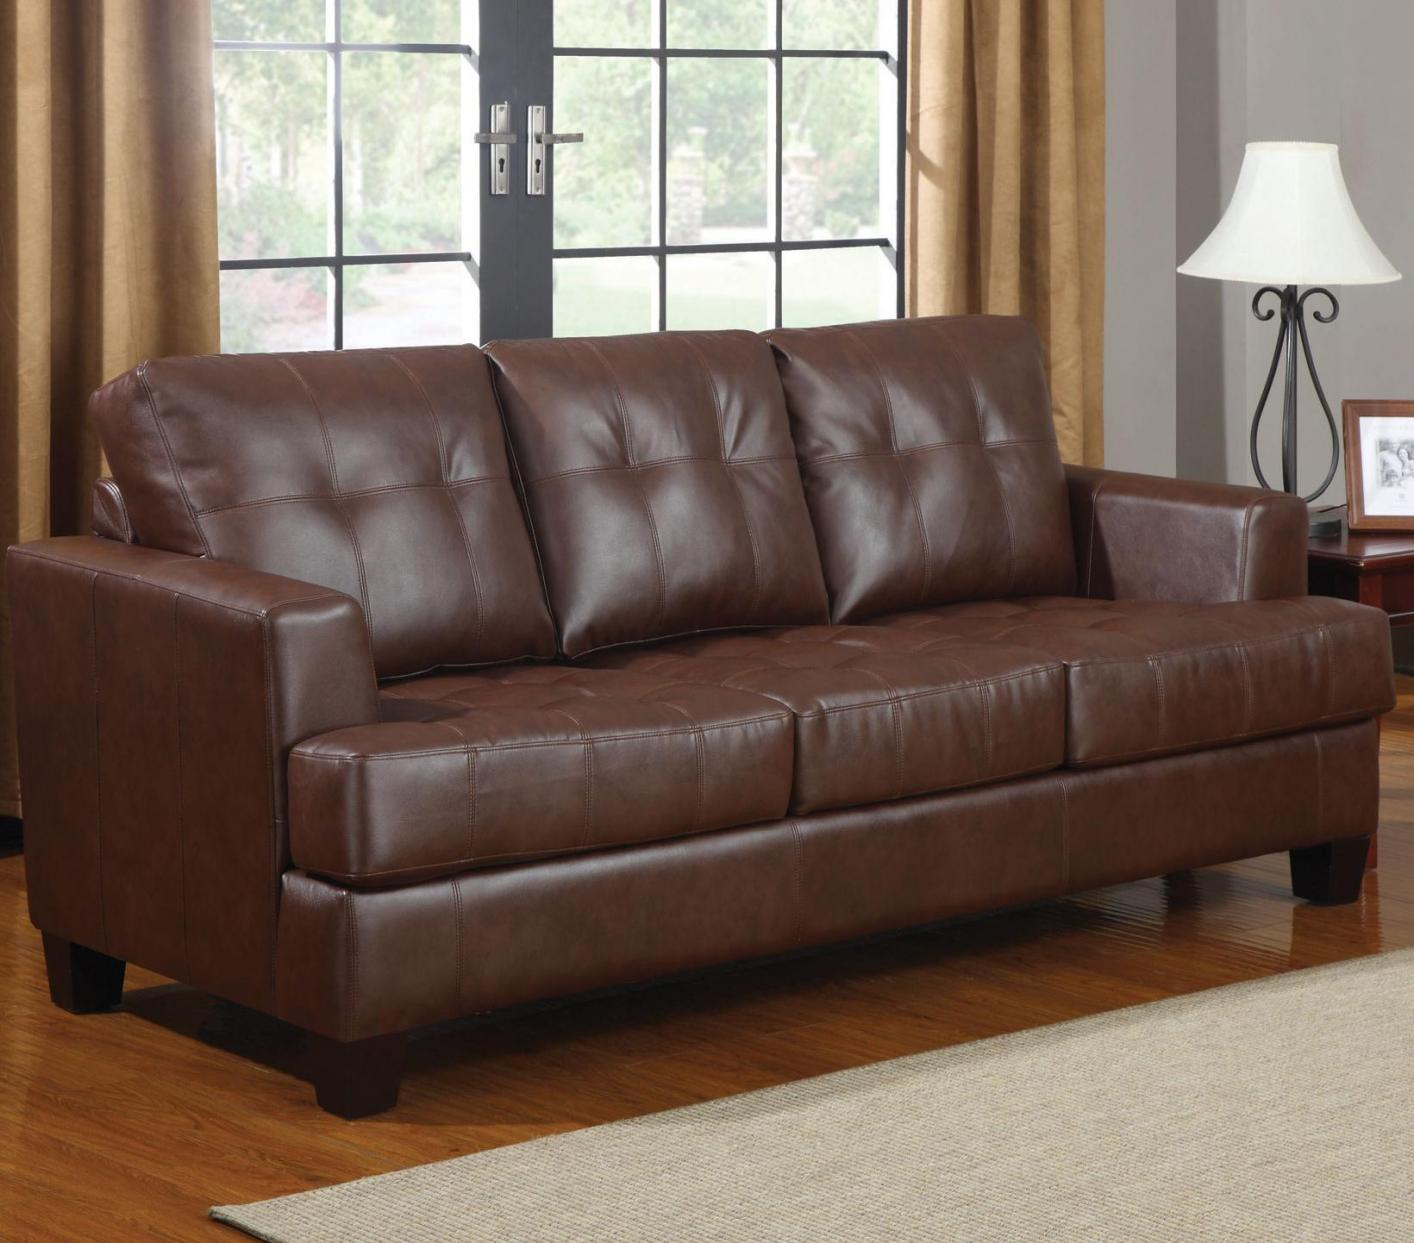 Brown Leather Sofa Bed Steal A Sofa Furniture Outlet Los